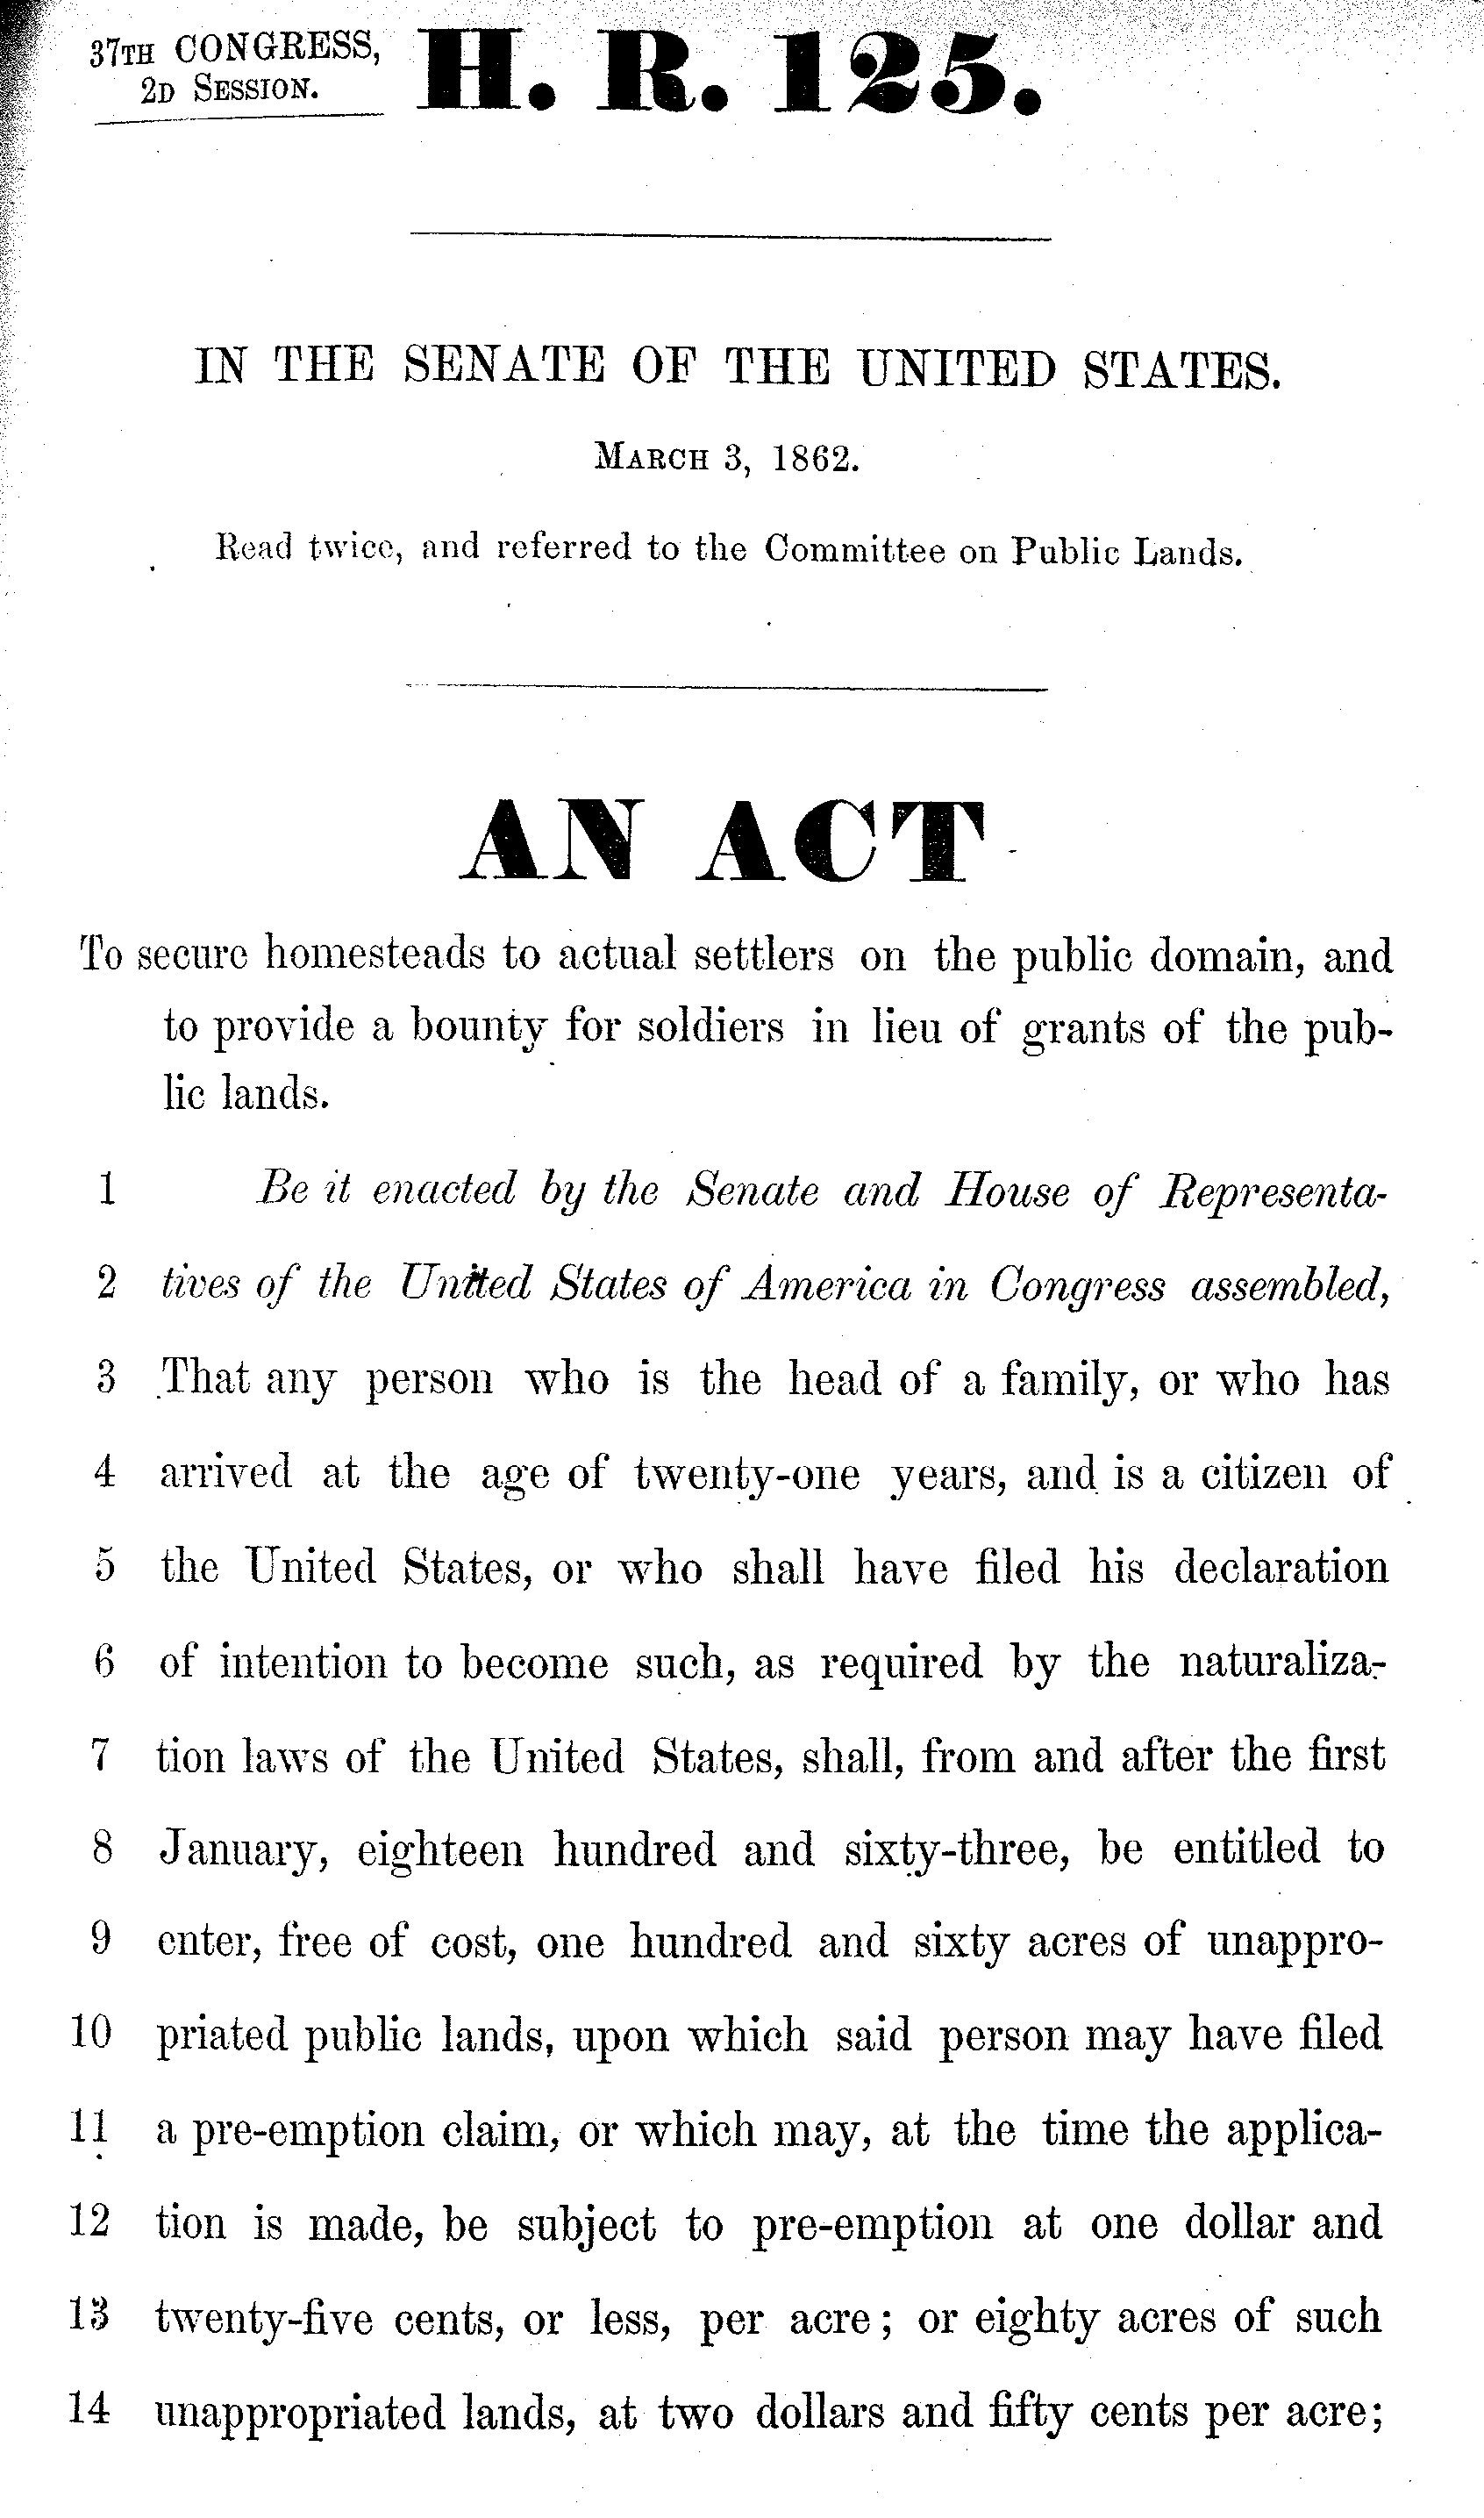 homestead act 1862 The homestead act of 1862 by richard pence background the passage of the homestead act by congress in 1862 was the culmination of more than 70 years of controversy.